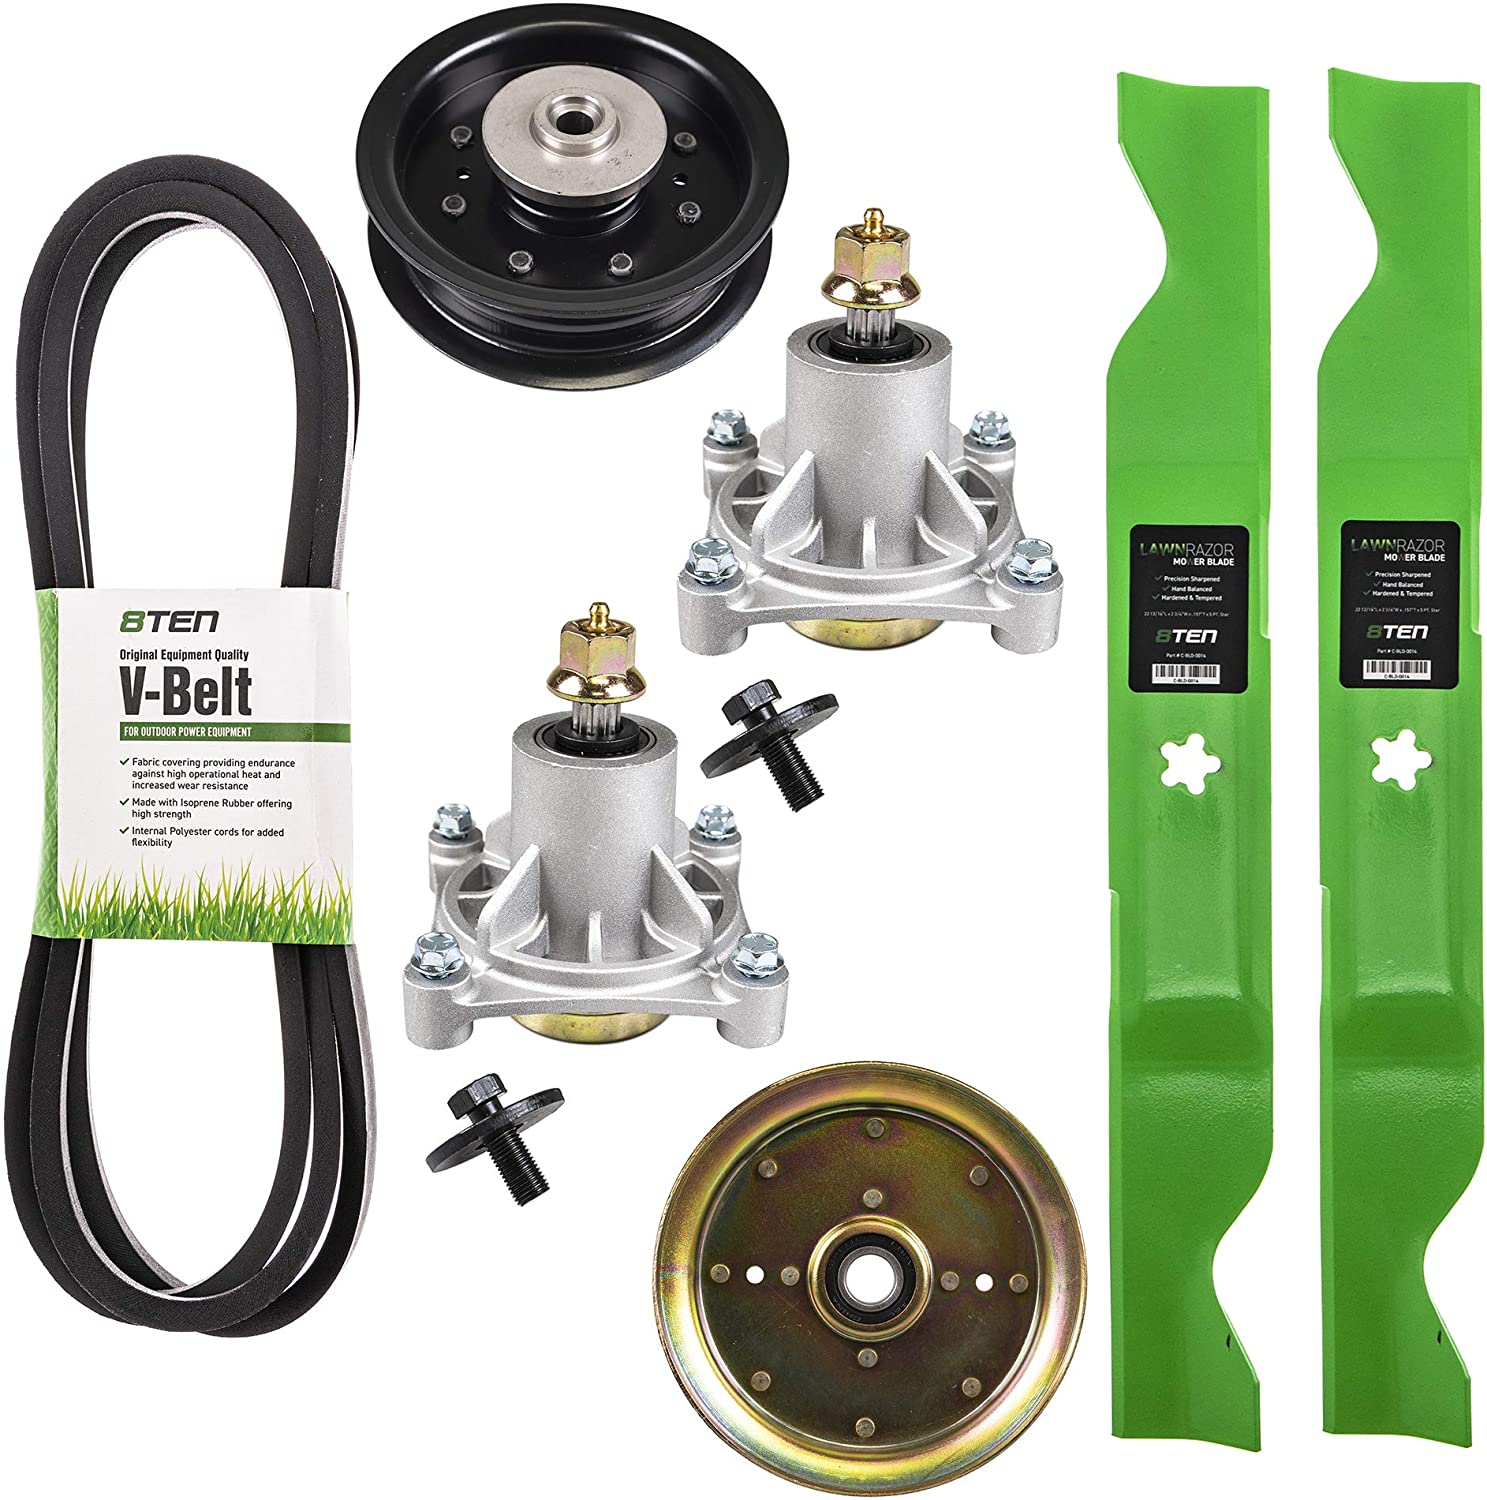 8TEN Blade Spindle Belt Idler Rebuild Kit for Husqvarna 46 Inch Deck RZ4621 RZ4623 532403107 532174358 532405380 196104